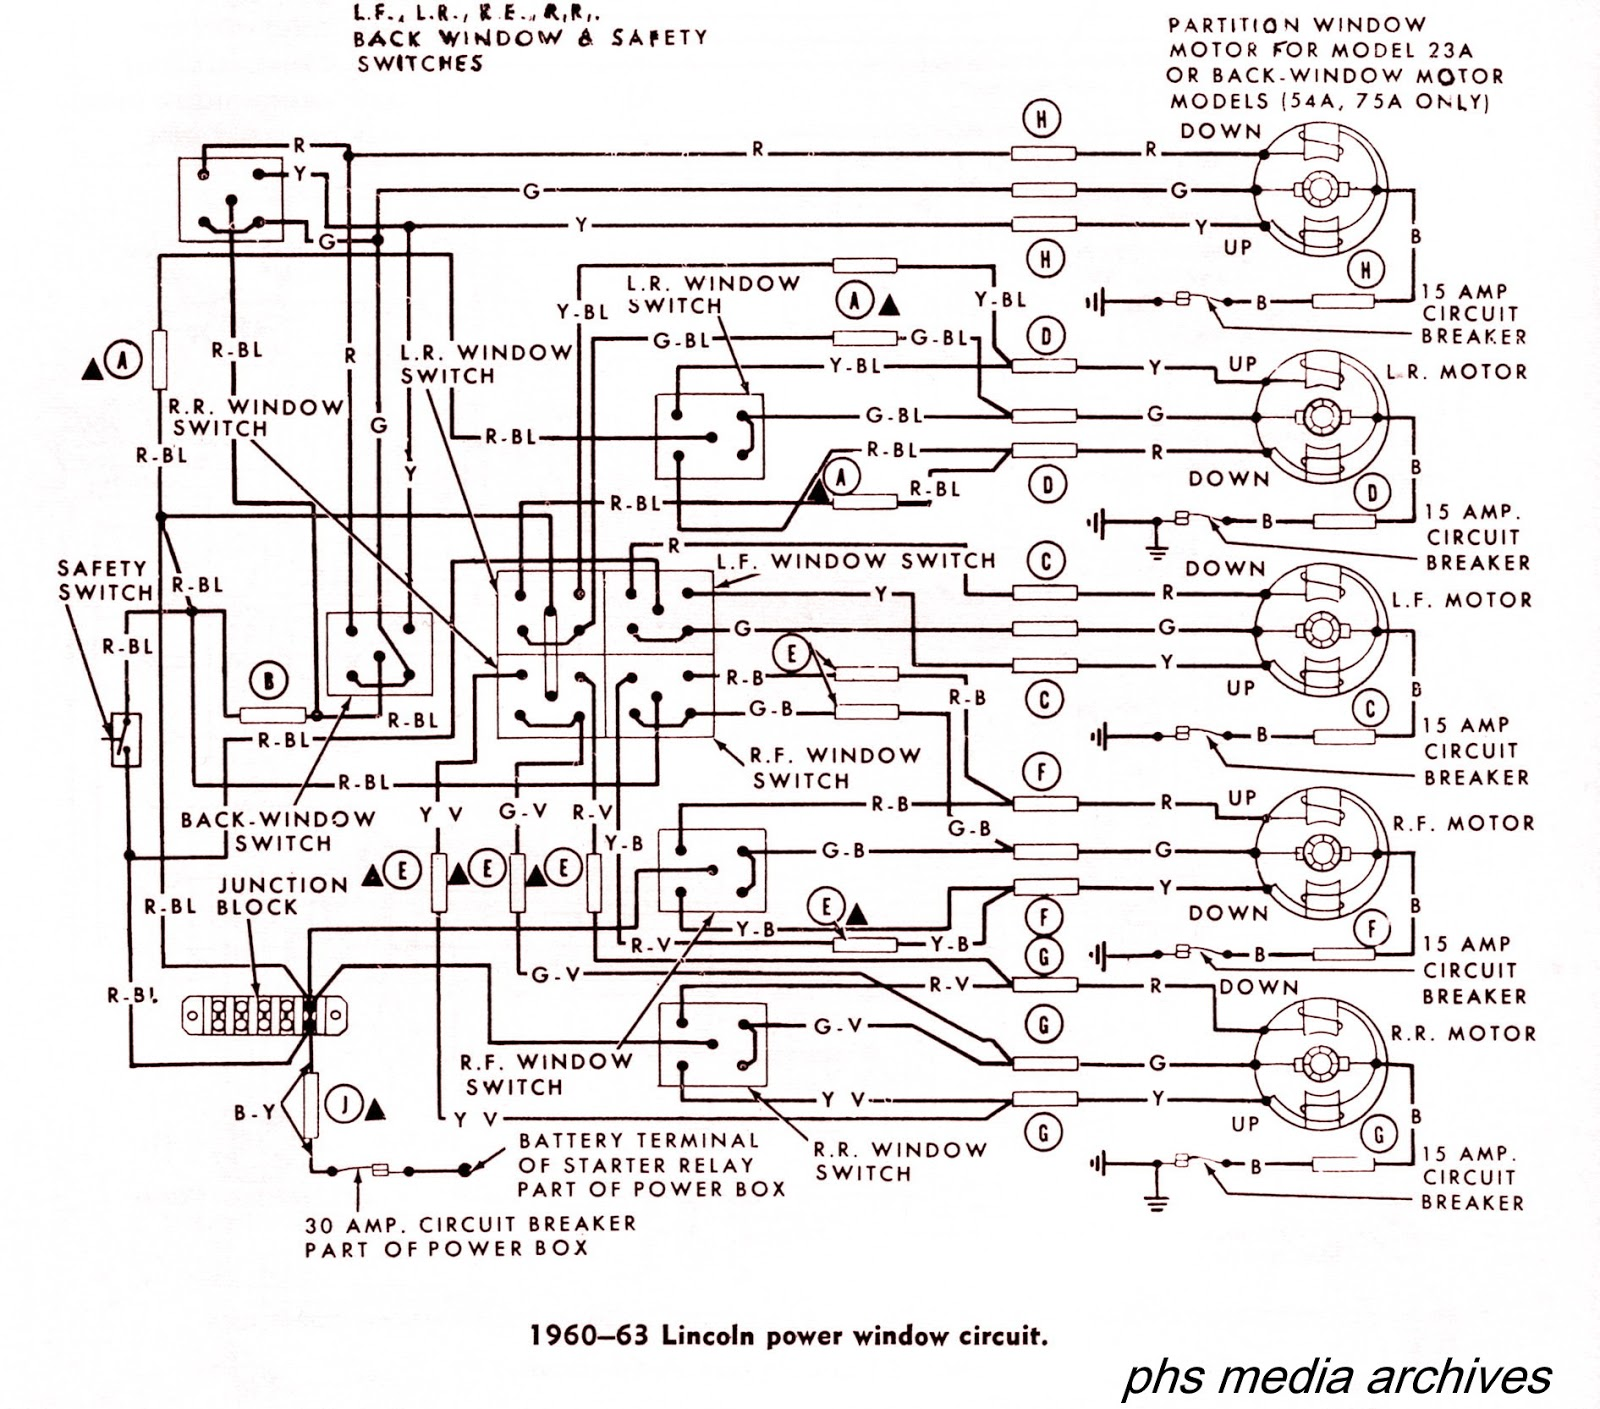 phscollectorcarworld: Tech Series: 1960-1964 Lincoln Wiring Diagramsphscollectorcarworld